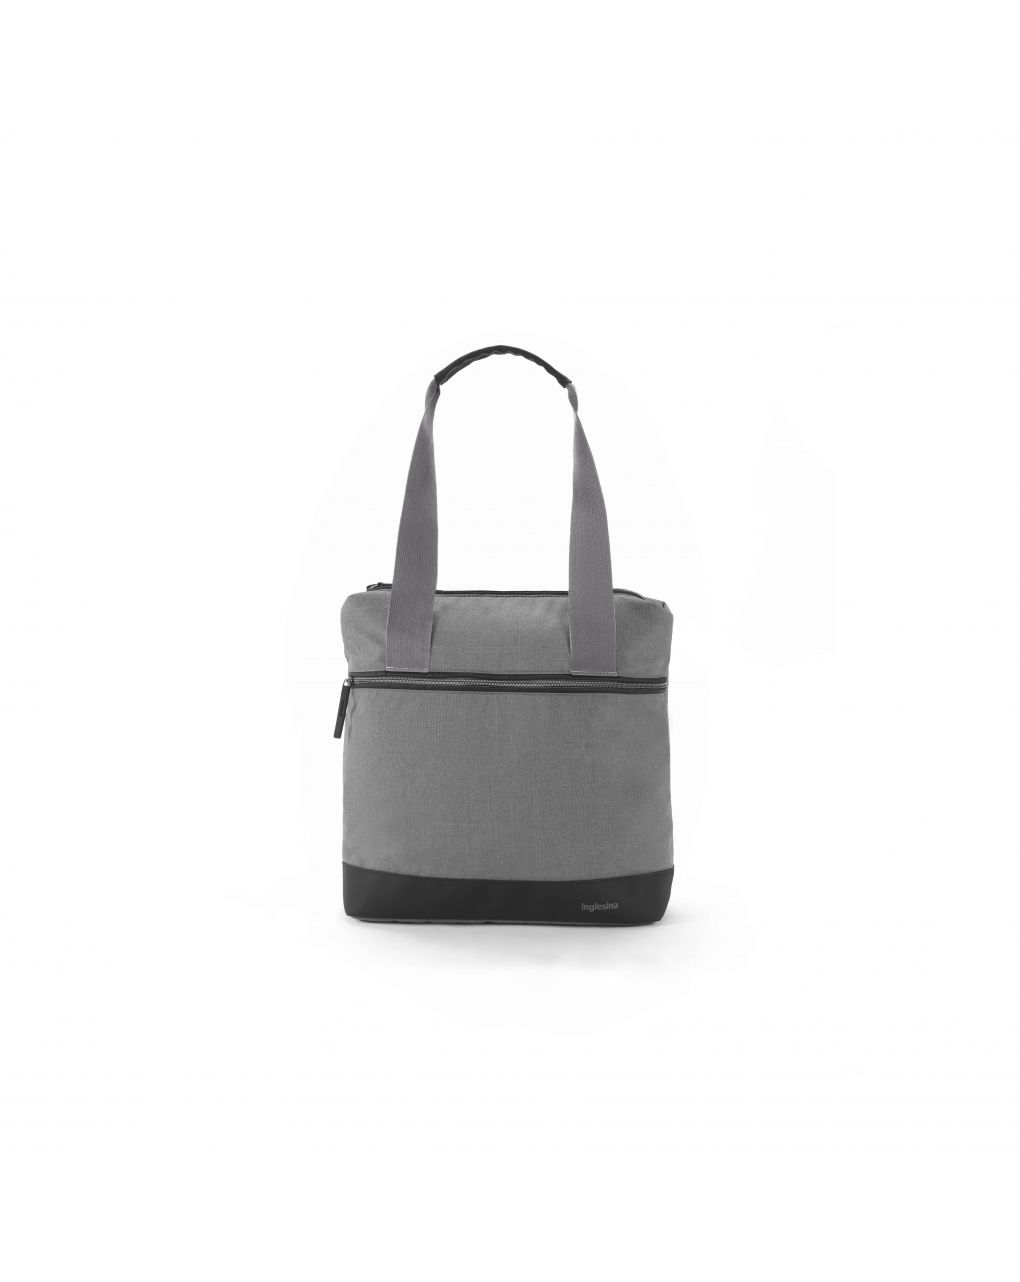 Inglesina aptica back bag, kensington grey - Inglesina